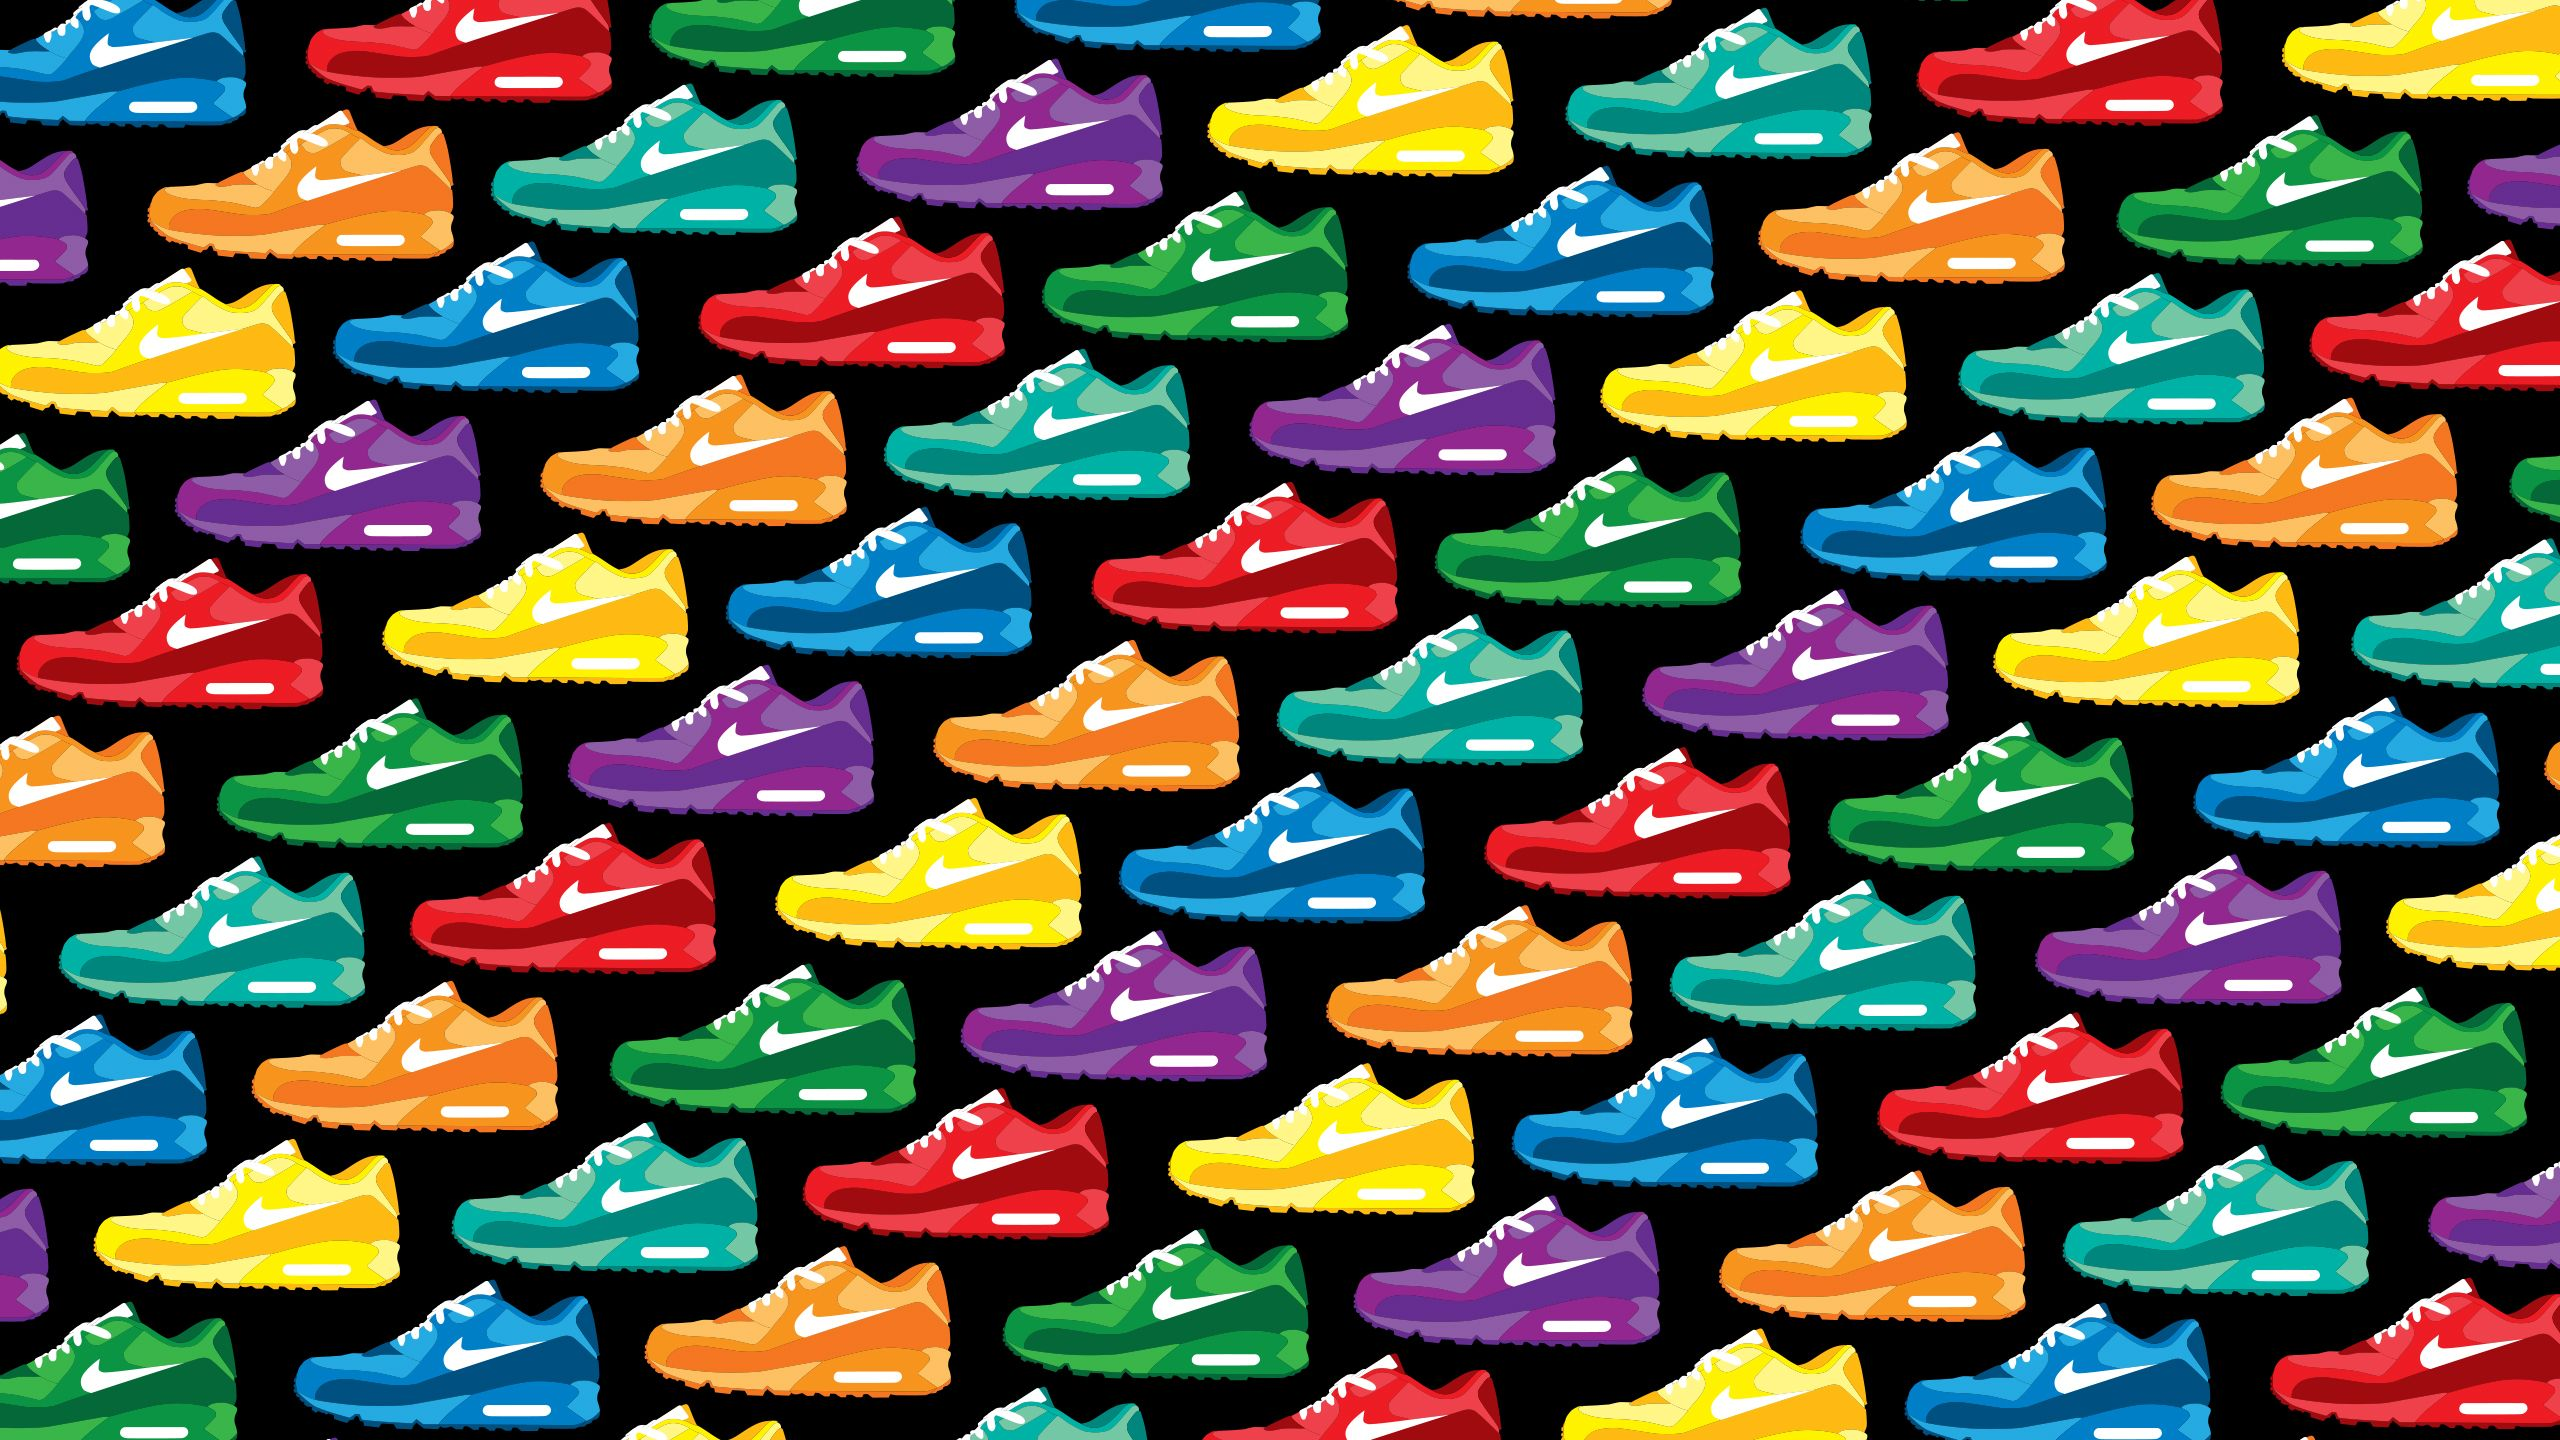 2560x1440 Nike Air Max Wallpaper (28+ images) on Genchi.info